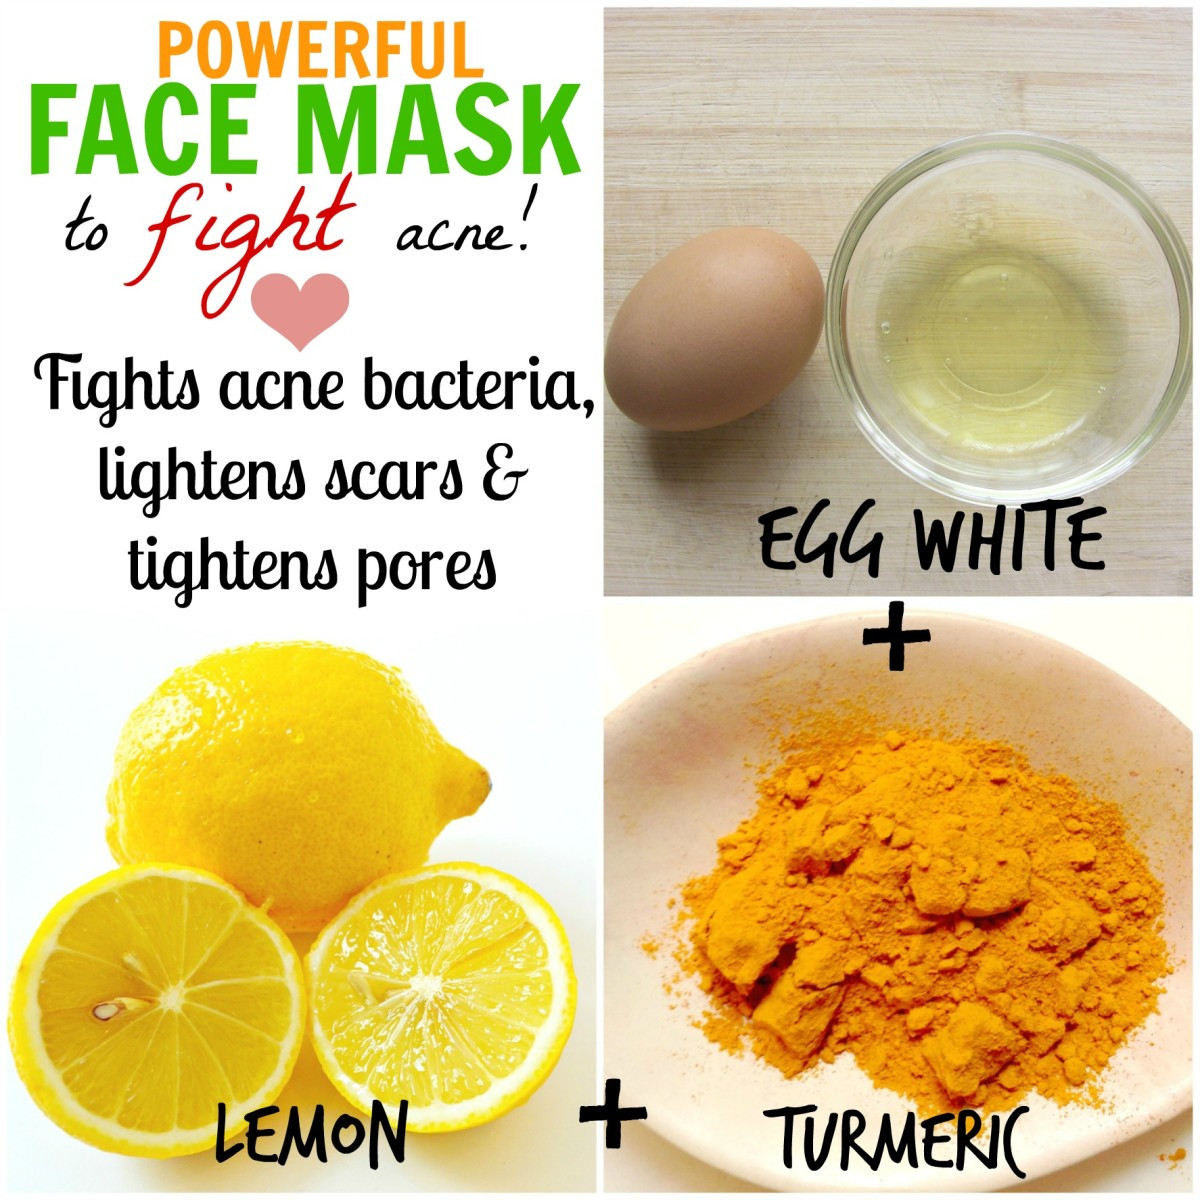 DIY Face Mask For Acne Scars  DIY Homemade Face Masks for Acne How to Stop Pimples